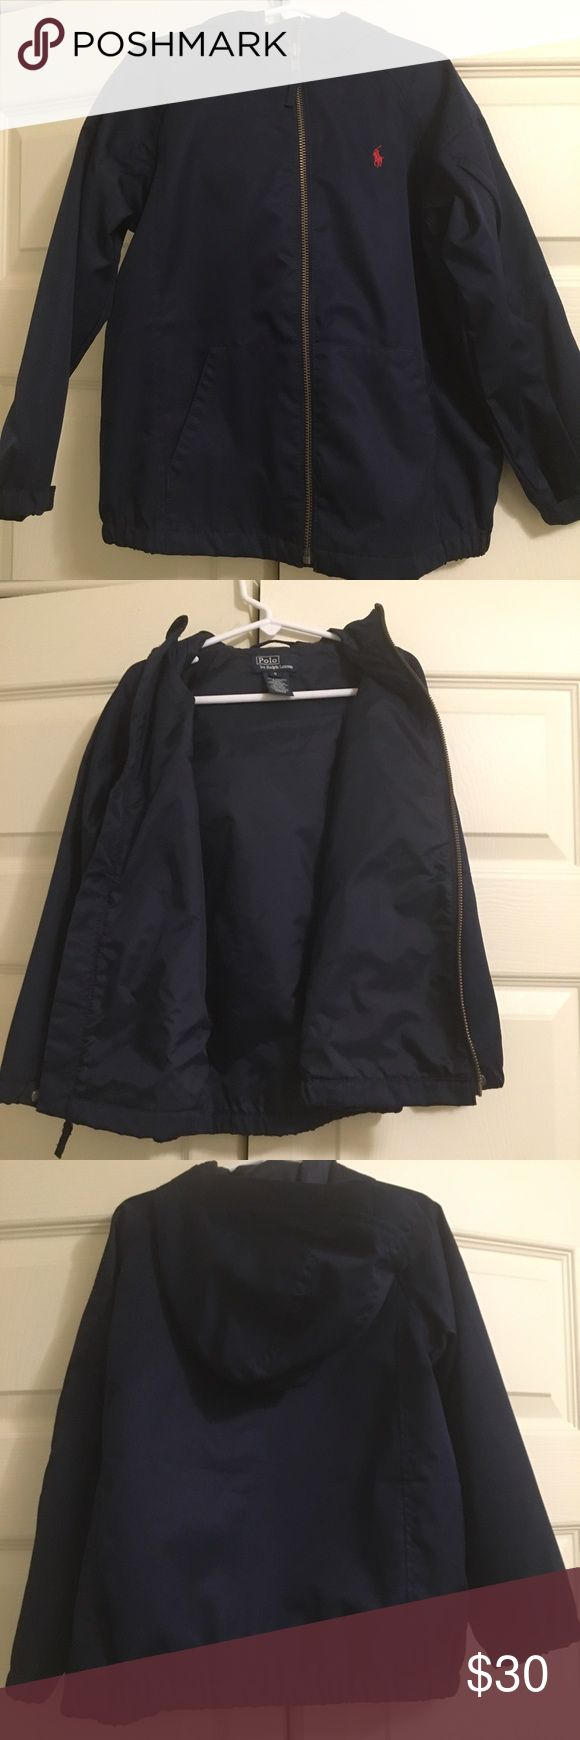 Boys Ralph Lauren outerwear jacket Ralph Lauren boys hooded 100% polyester packable outerwear jacket. Blue size 5. Jacket is in Excellent condition Polo by Ralph Lauren Jackets & Coats